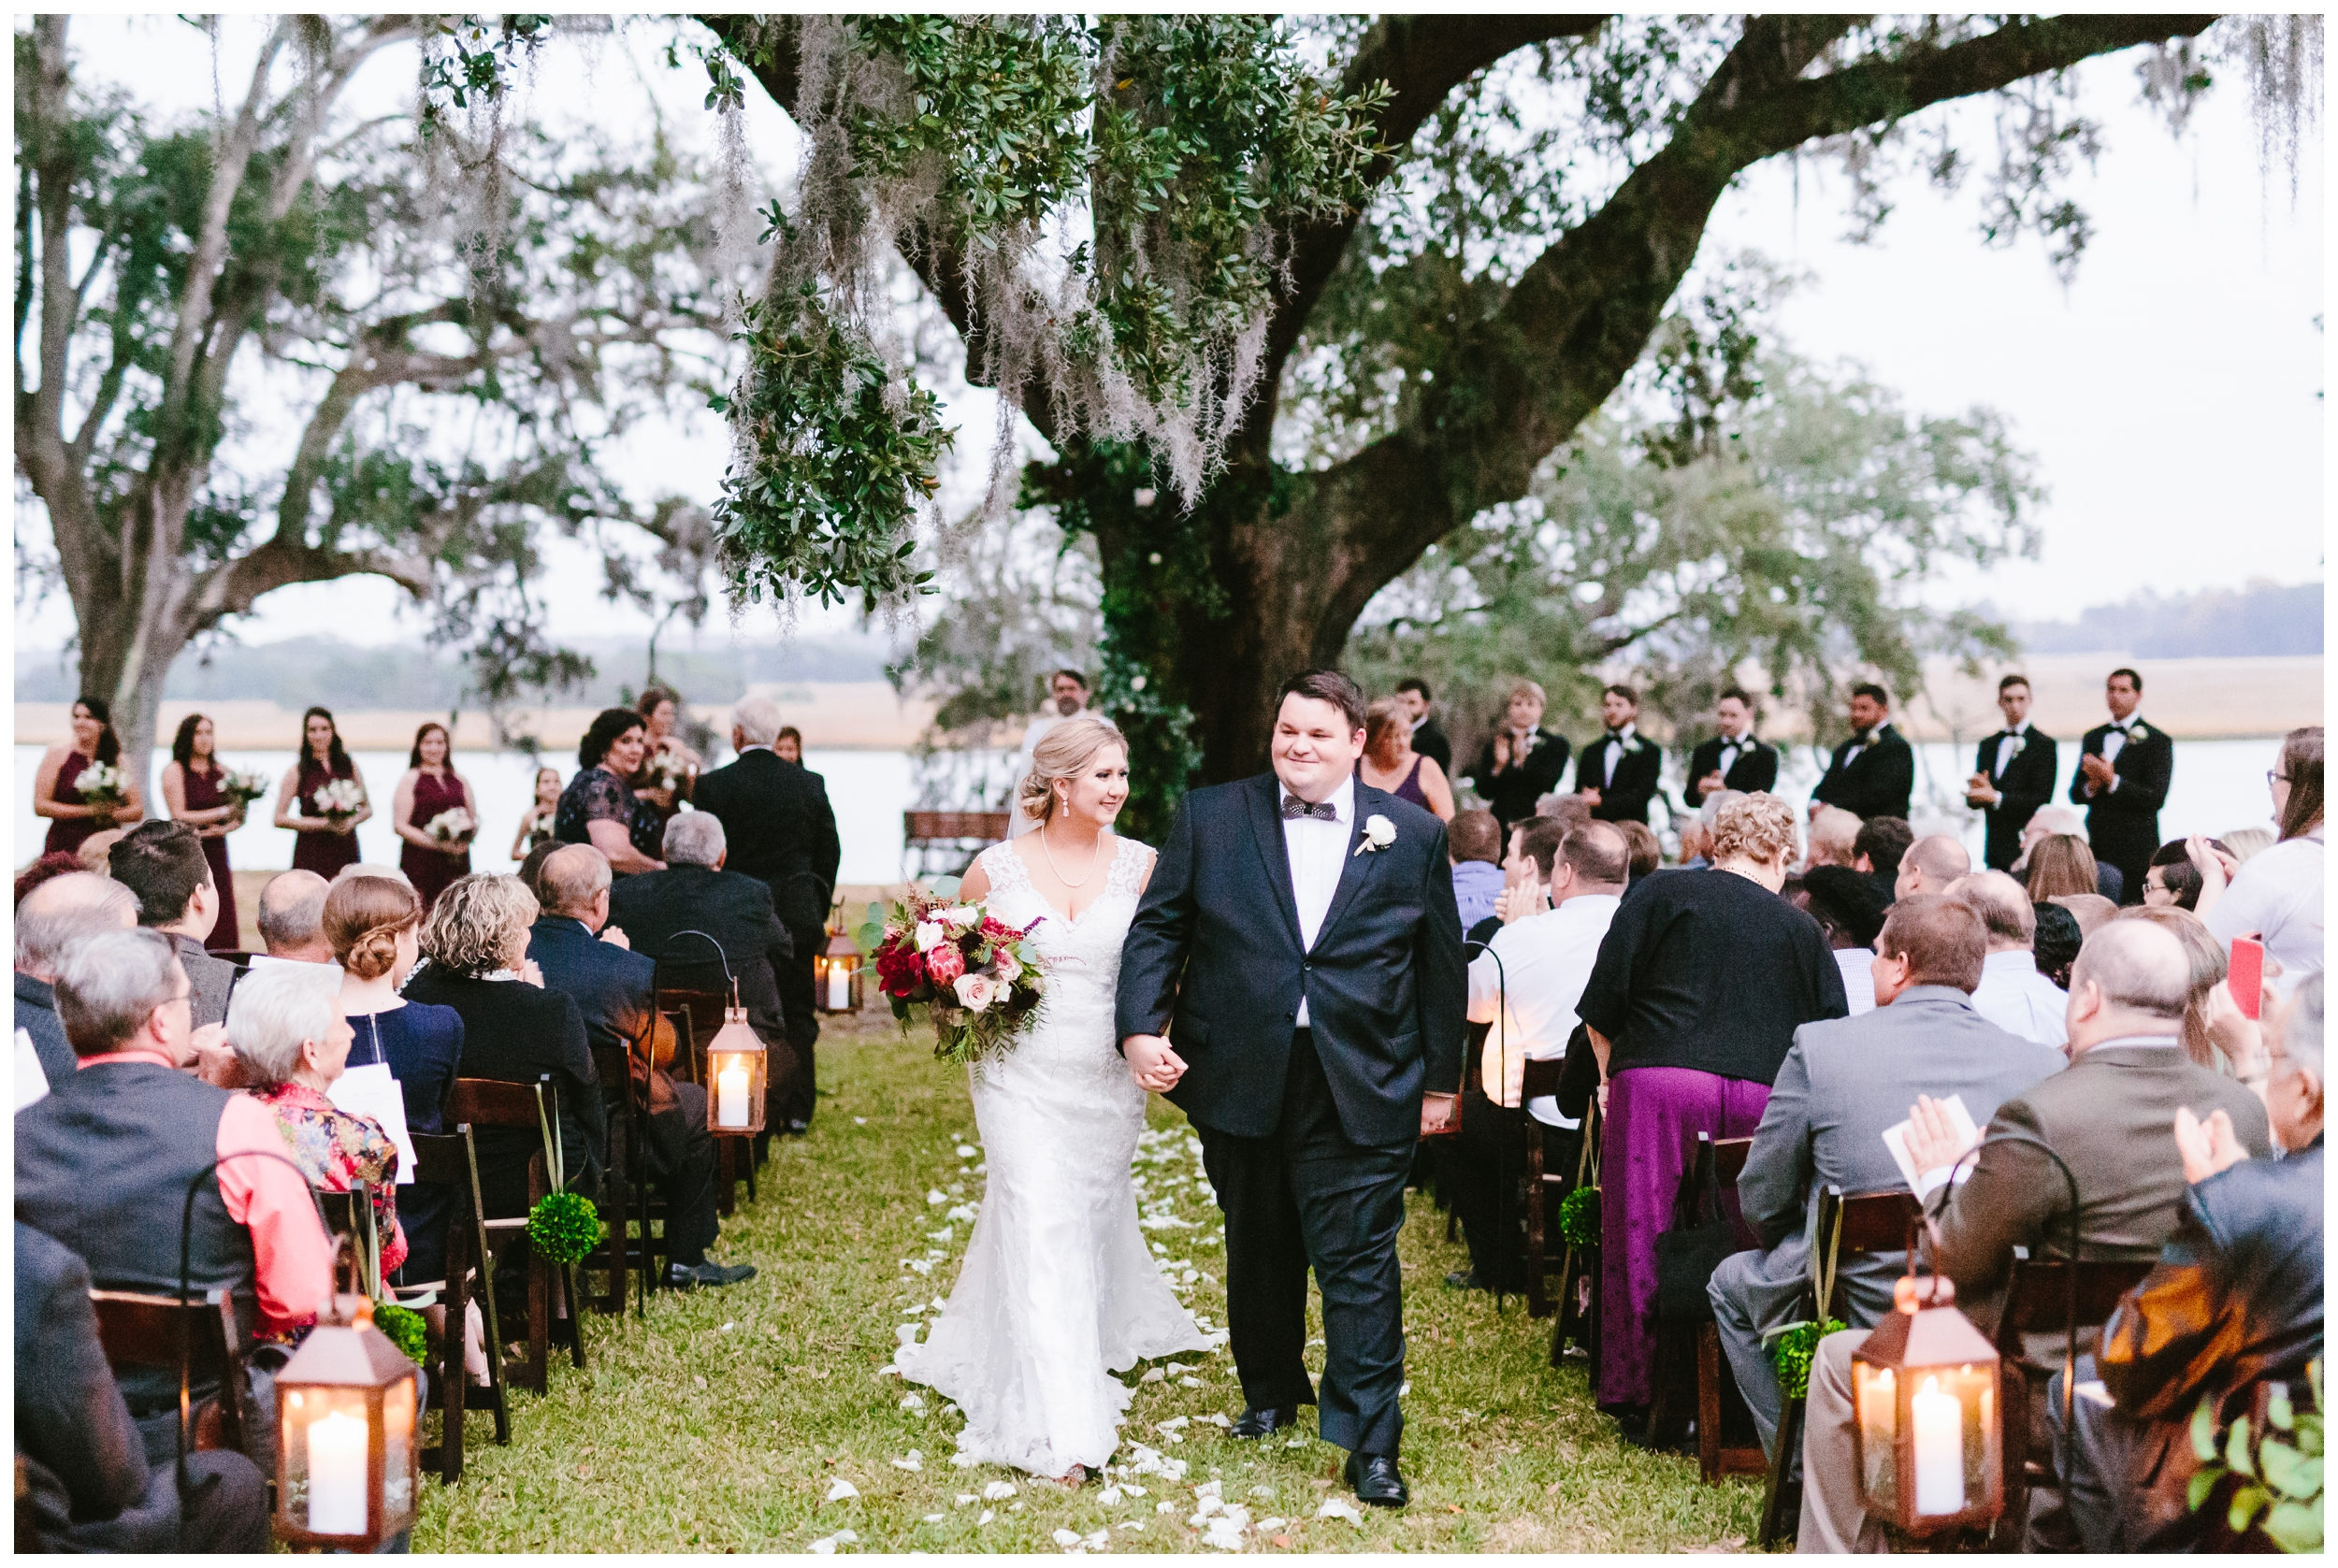 it's official! mr. and mrs. brillenger exchanged their vows underneath the beautiful oak of old wide awake park.